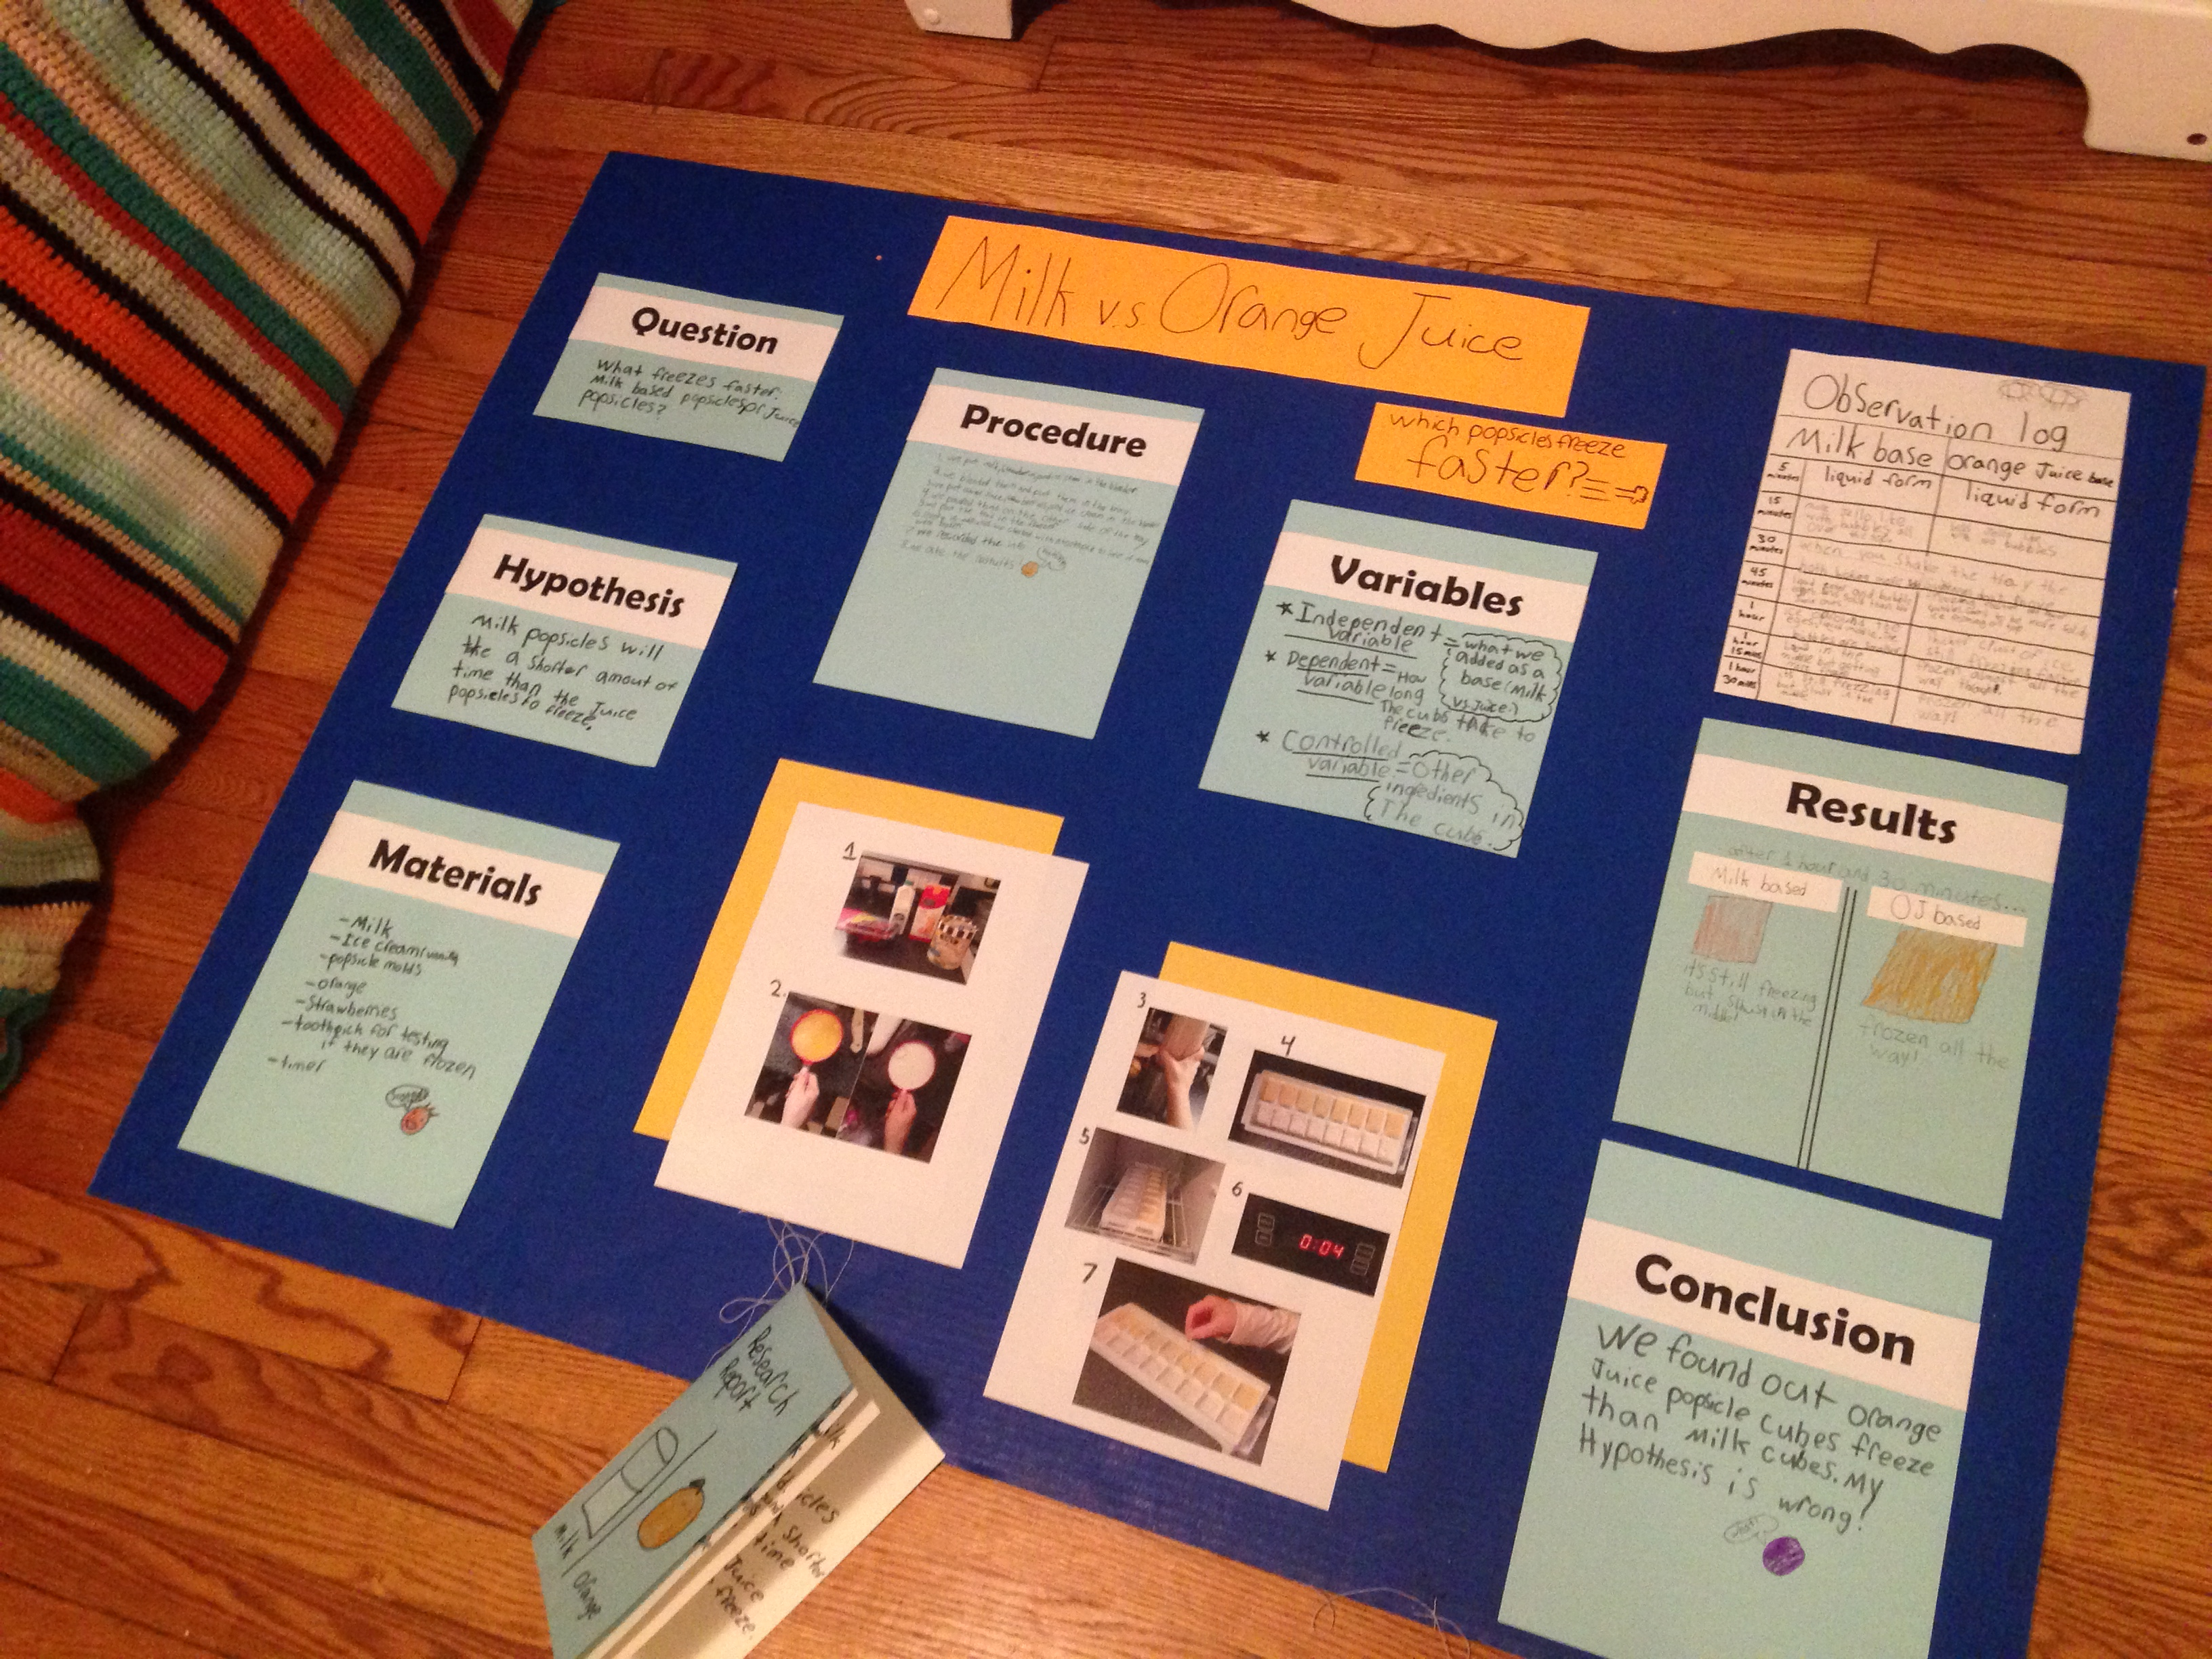 hypothesis for science fair project The 3rd step for a science fair project is to research and form a hypothesis.